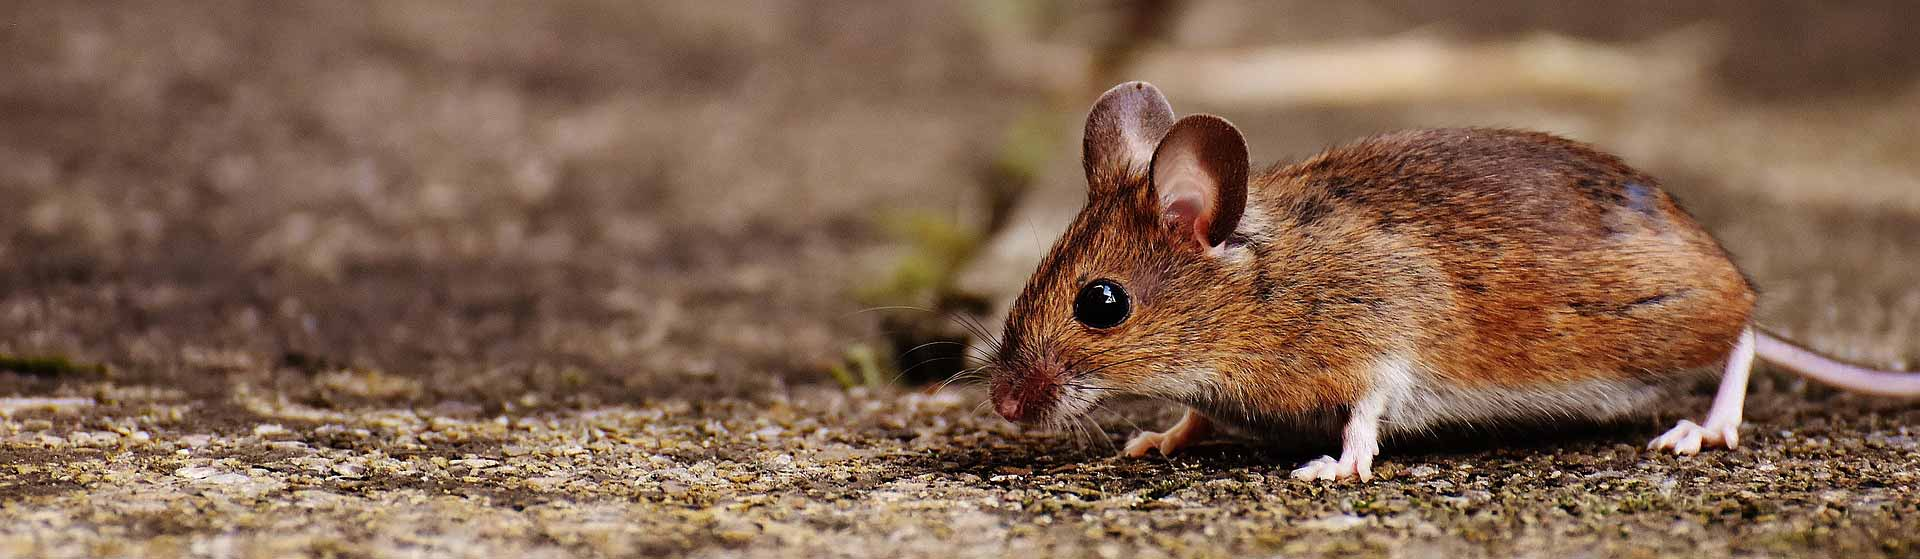 How to Make Mouse Poison 2019- Step by Step Guidelines